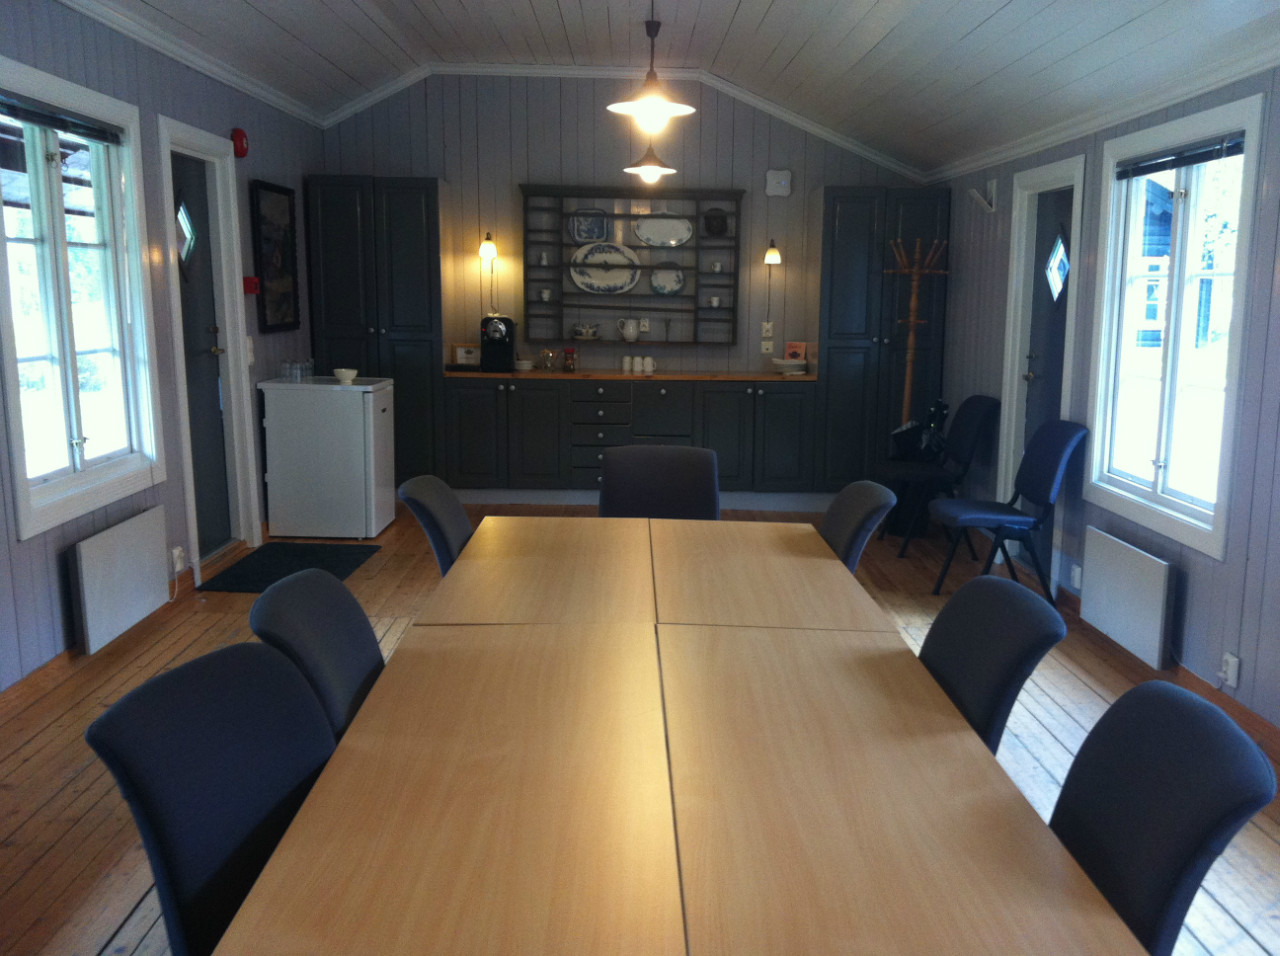 Meeting-Room-hotell-skype-ski-kleivstua-coffee.JPG